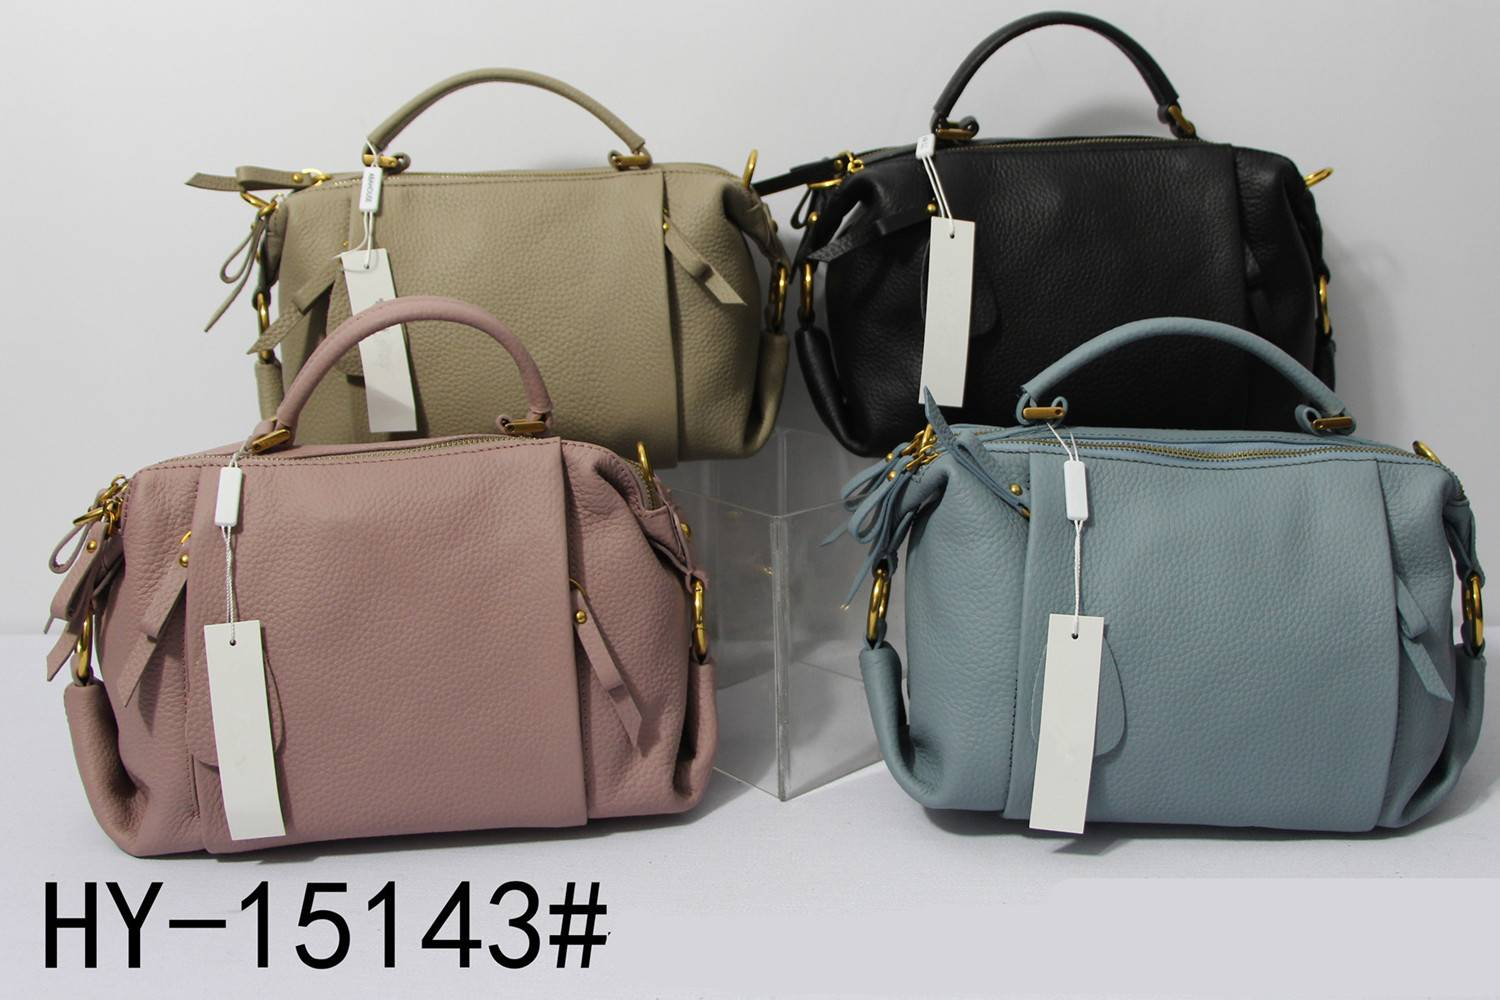 Stylish,concise lady's handbag HY-15143#